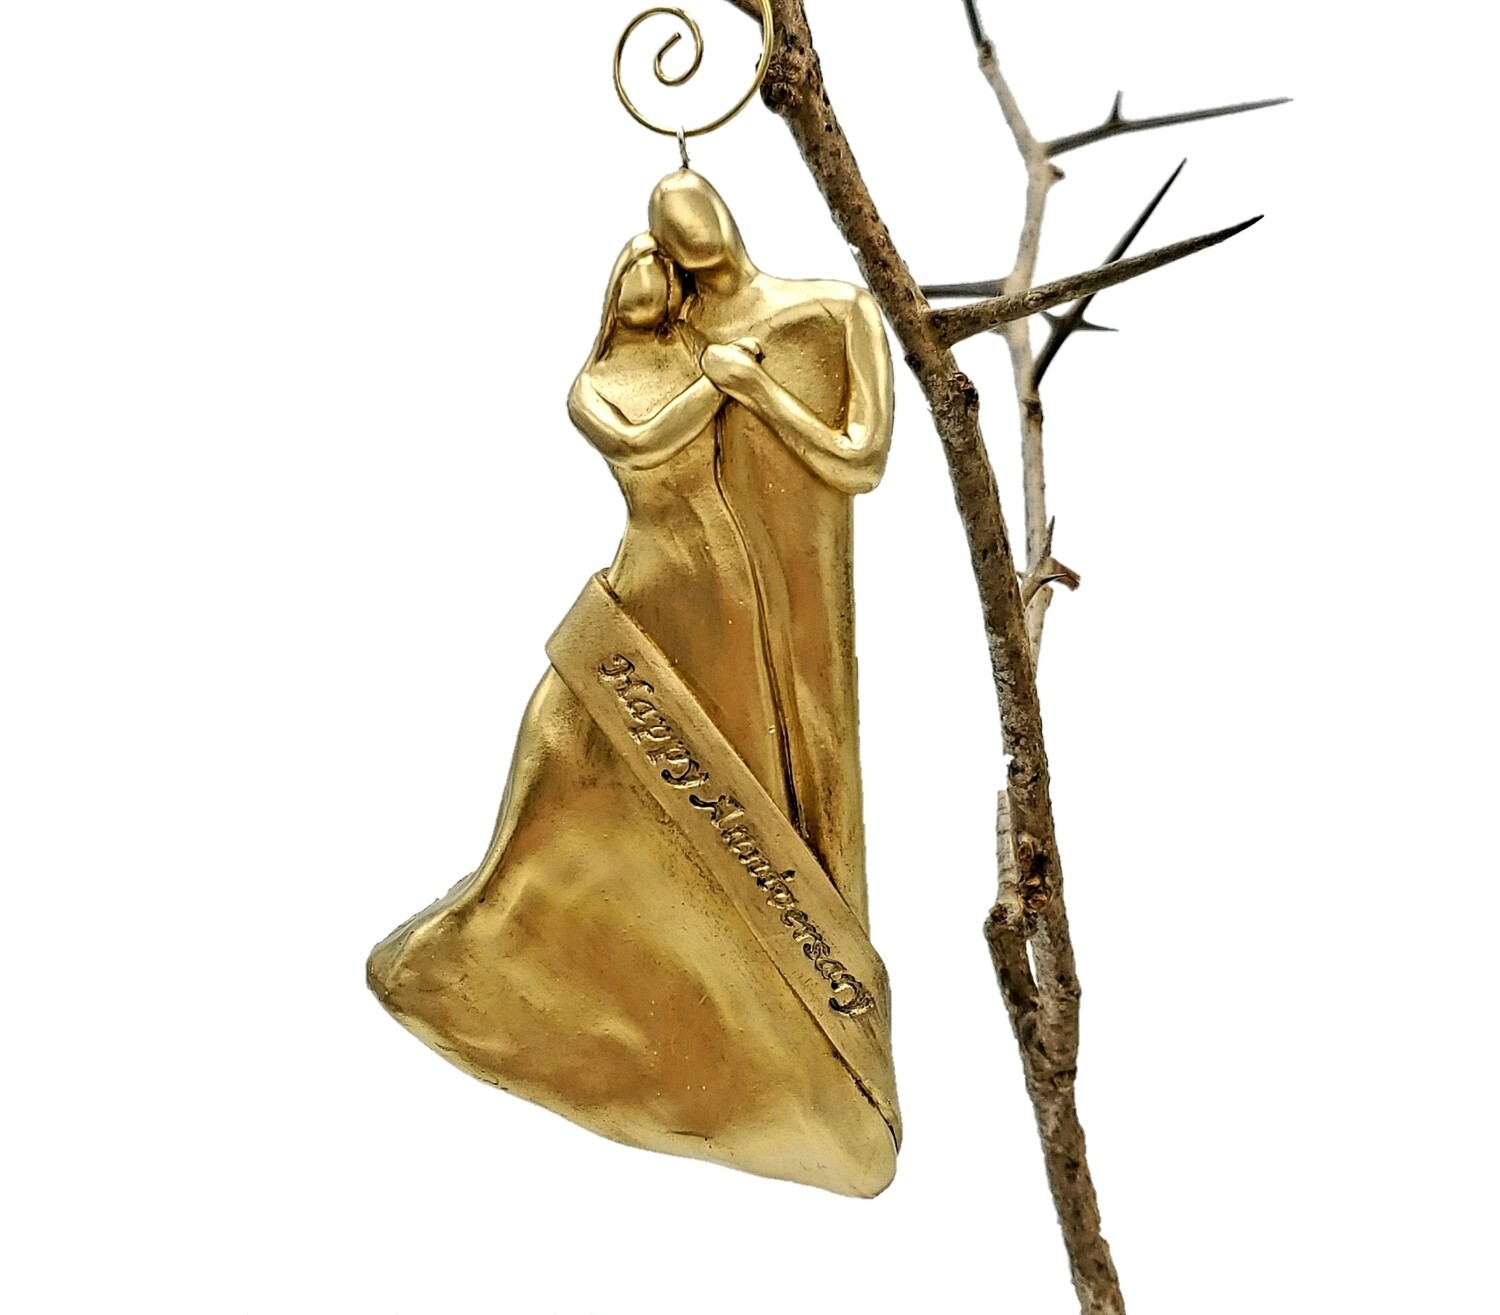 50th Wedding Anniversary Gold Christmas Ornament Gift for Parents, Couple, Friends, Husband or Wife